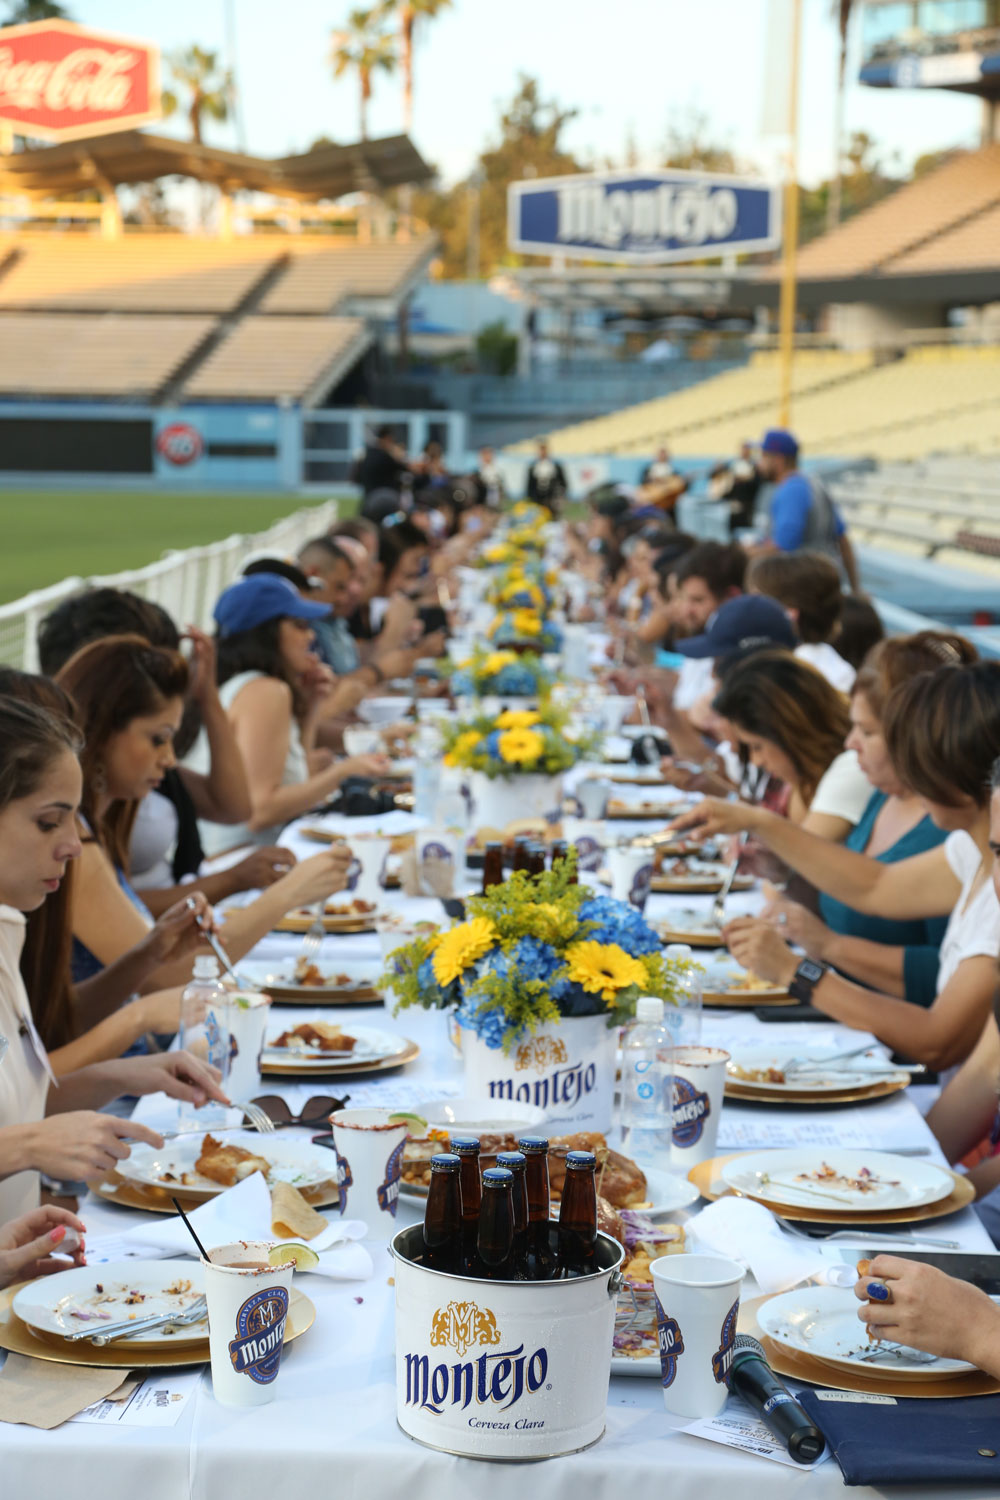 monetjo tailgate event at dodger stadium